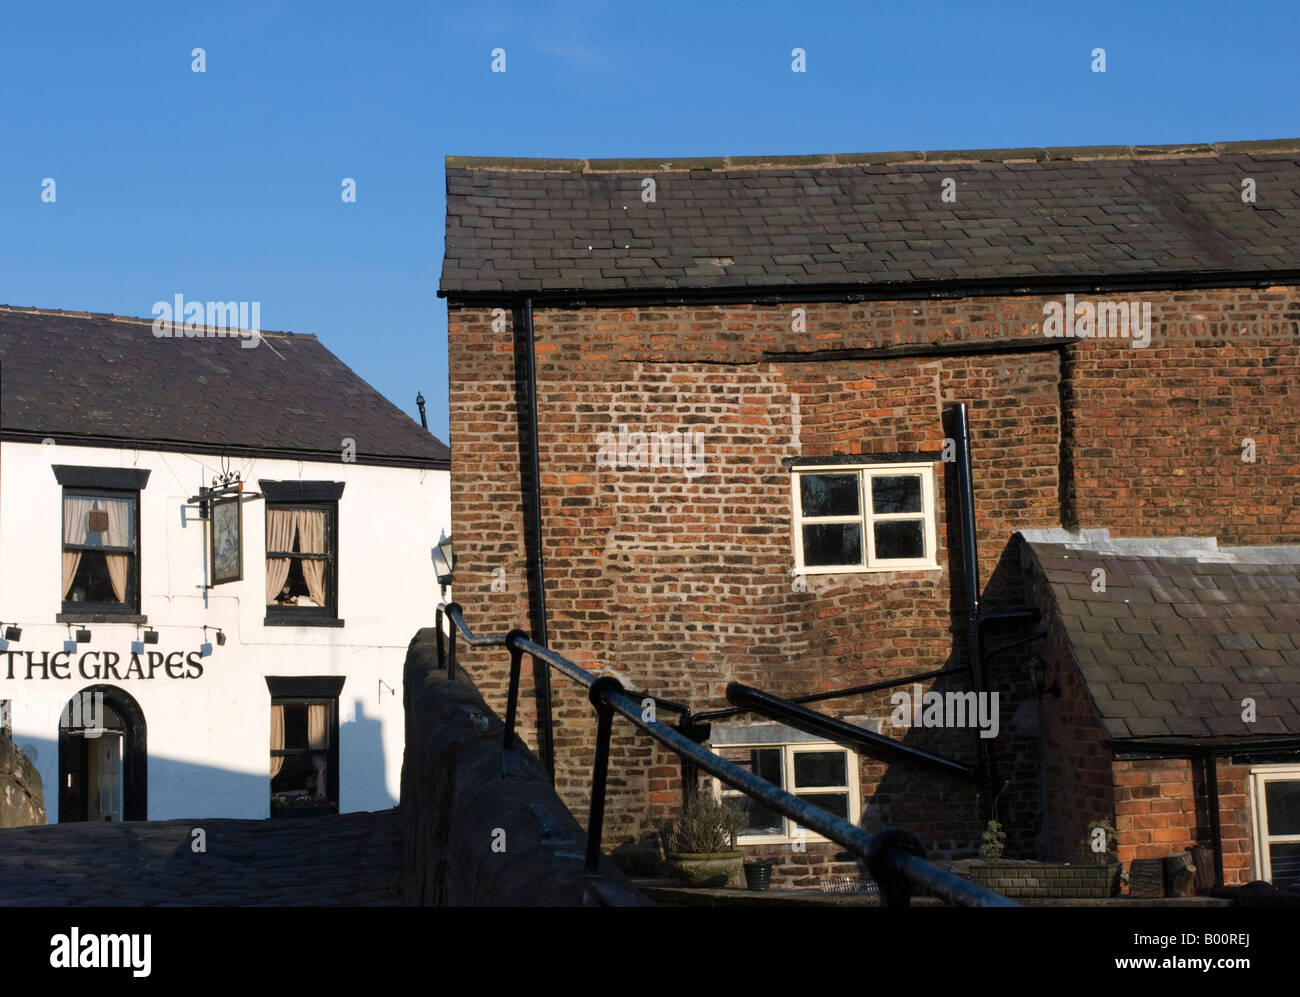 The Grapes pub at Croston in Lancashire from the old packhorse bridge over the River Yarrow - Stock Image